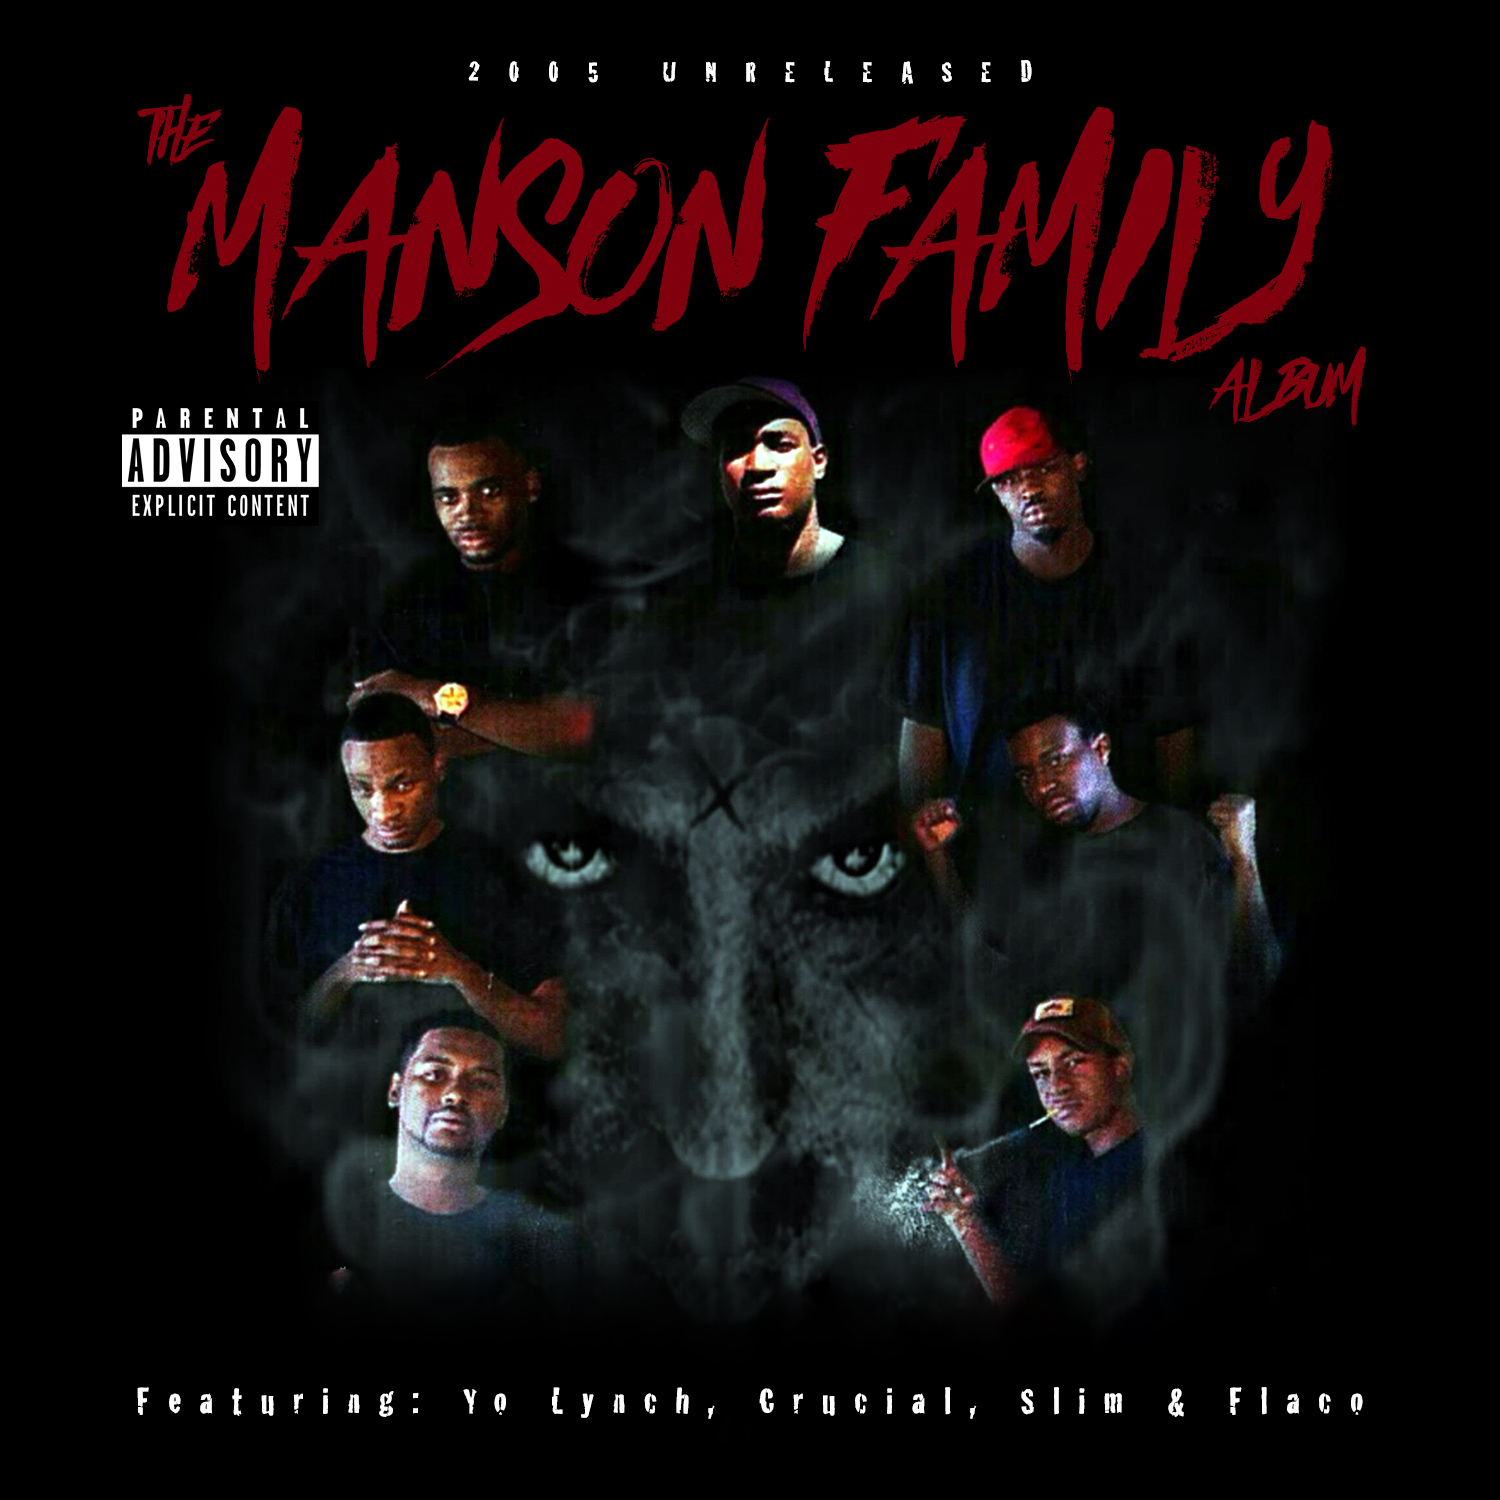 Manson Family - The Manson Family Album (2005 Unreleased)